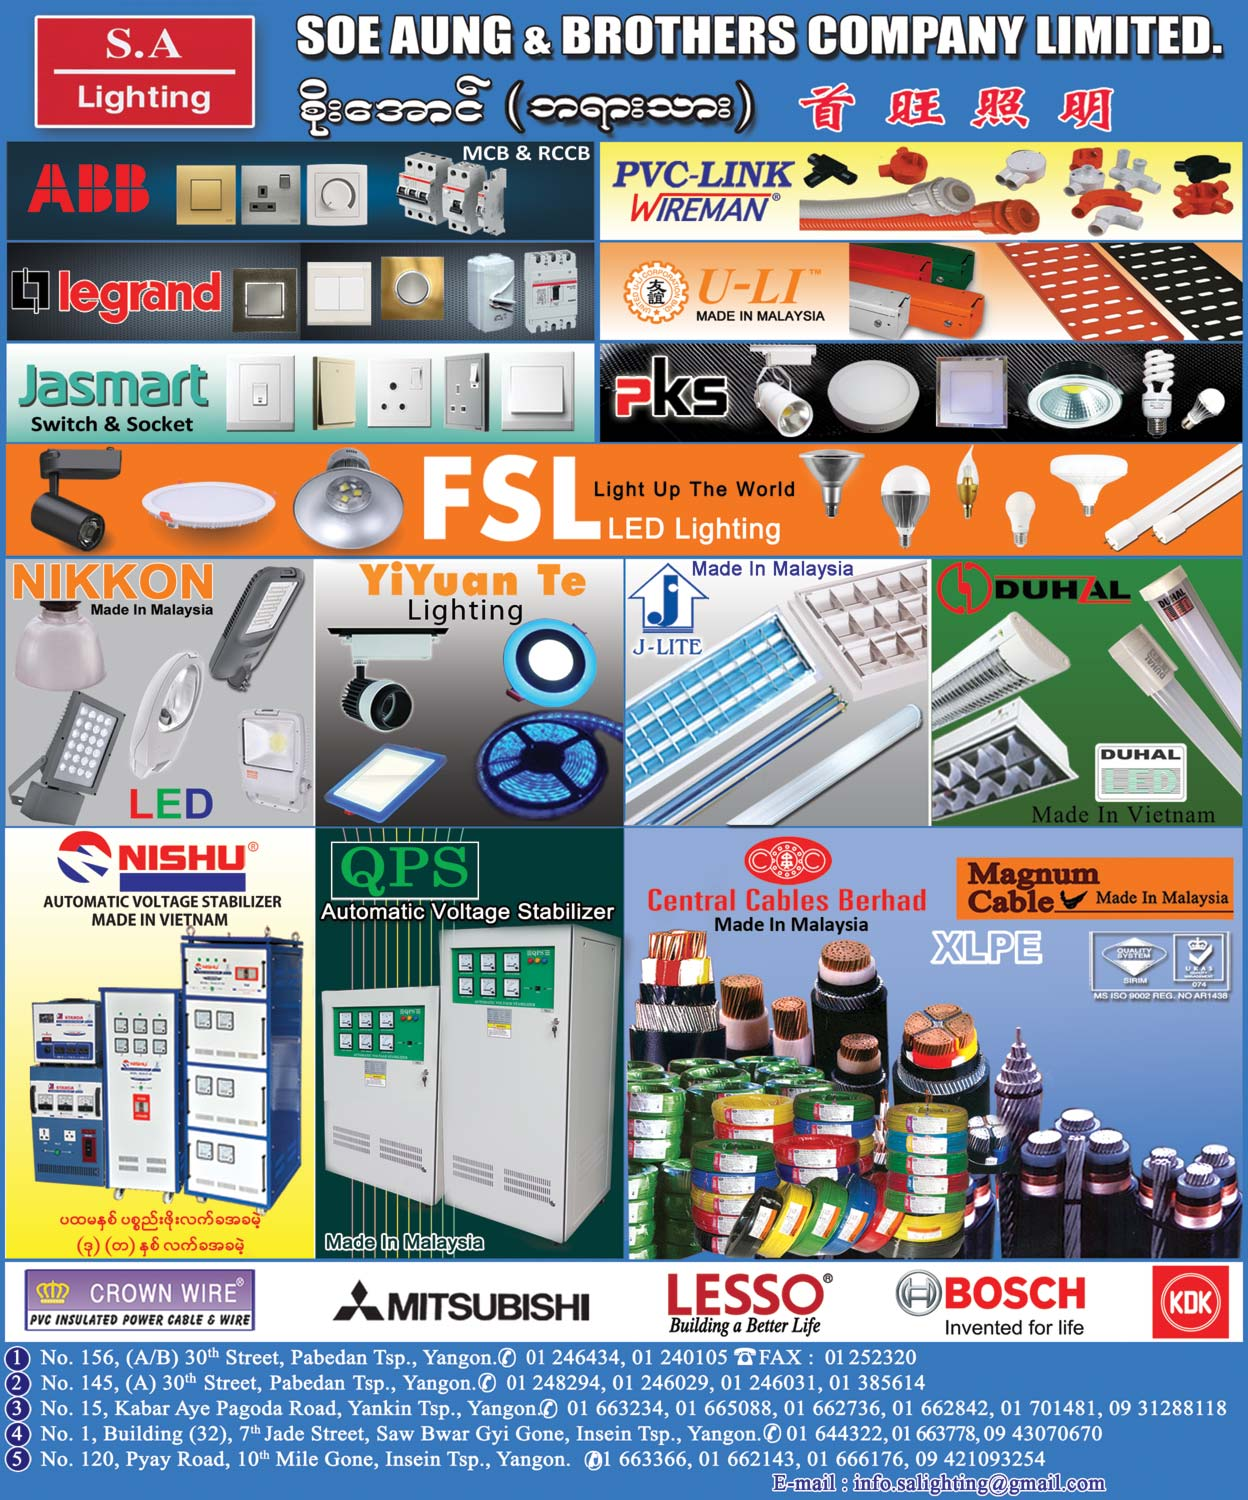 Soe Aung & Brothers Company Limited.Electrical Goods Sales